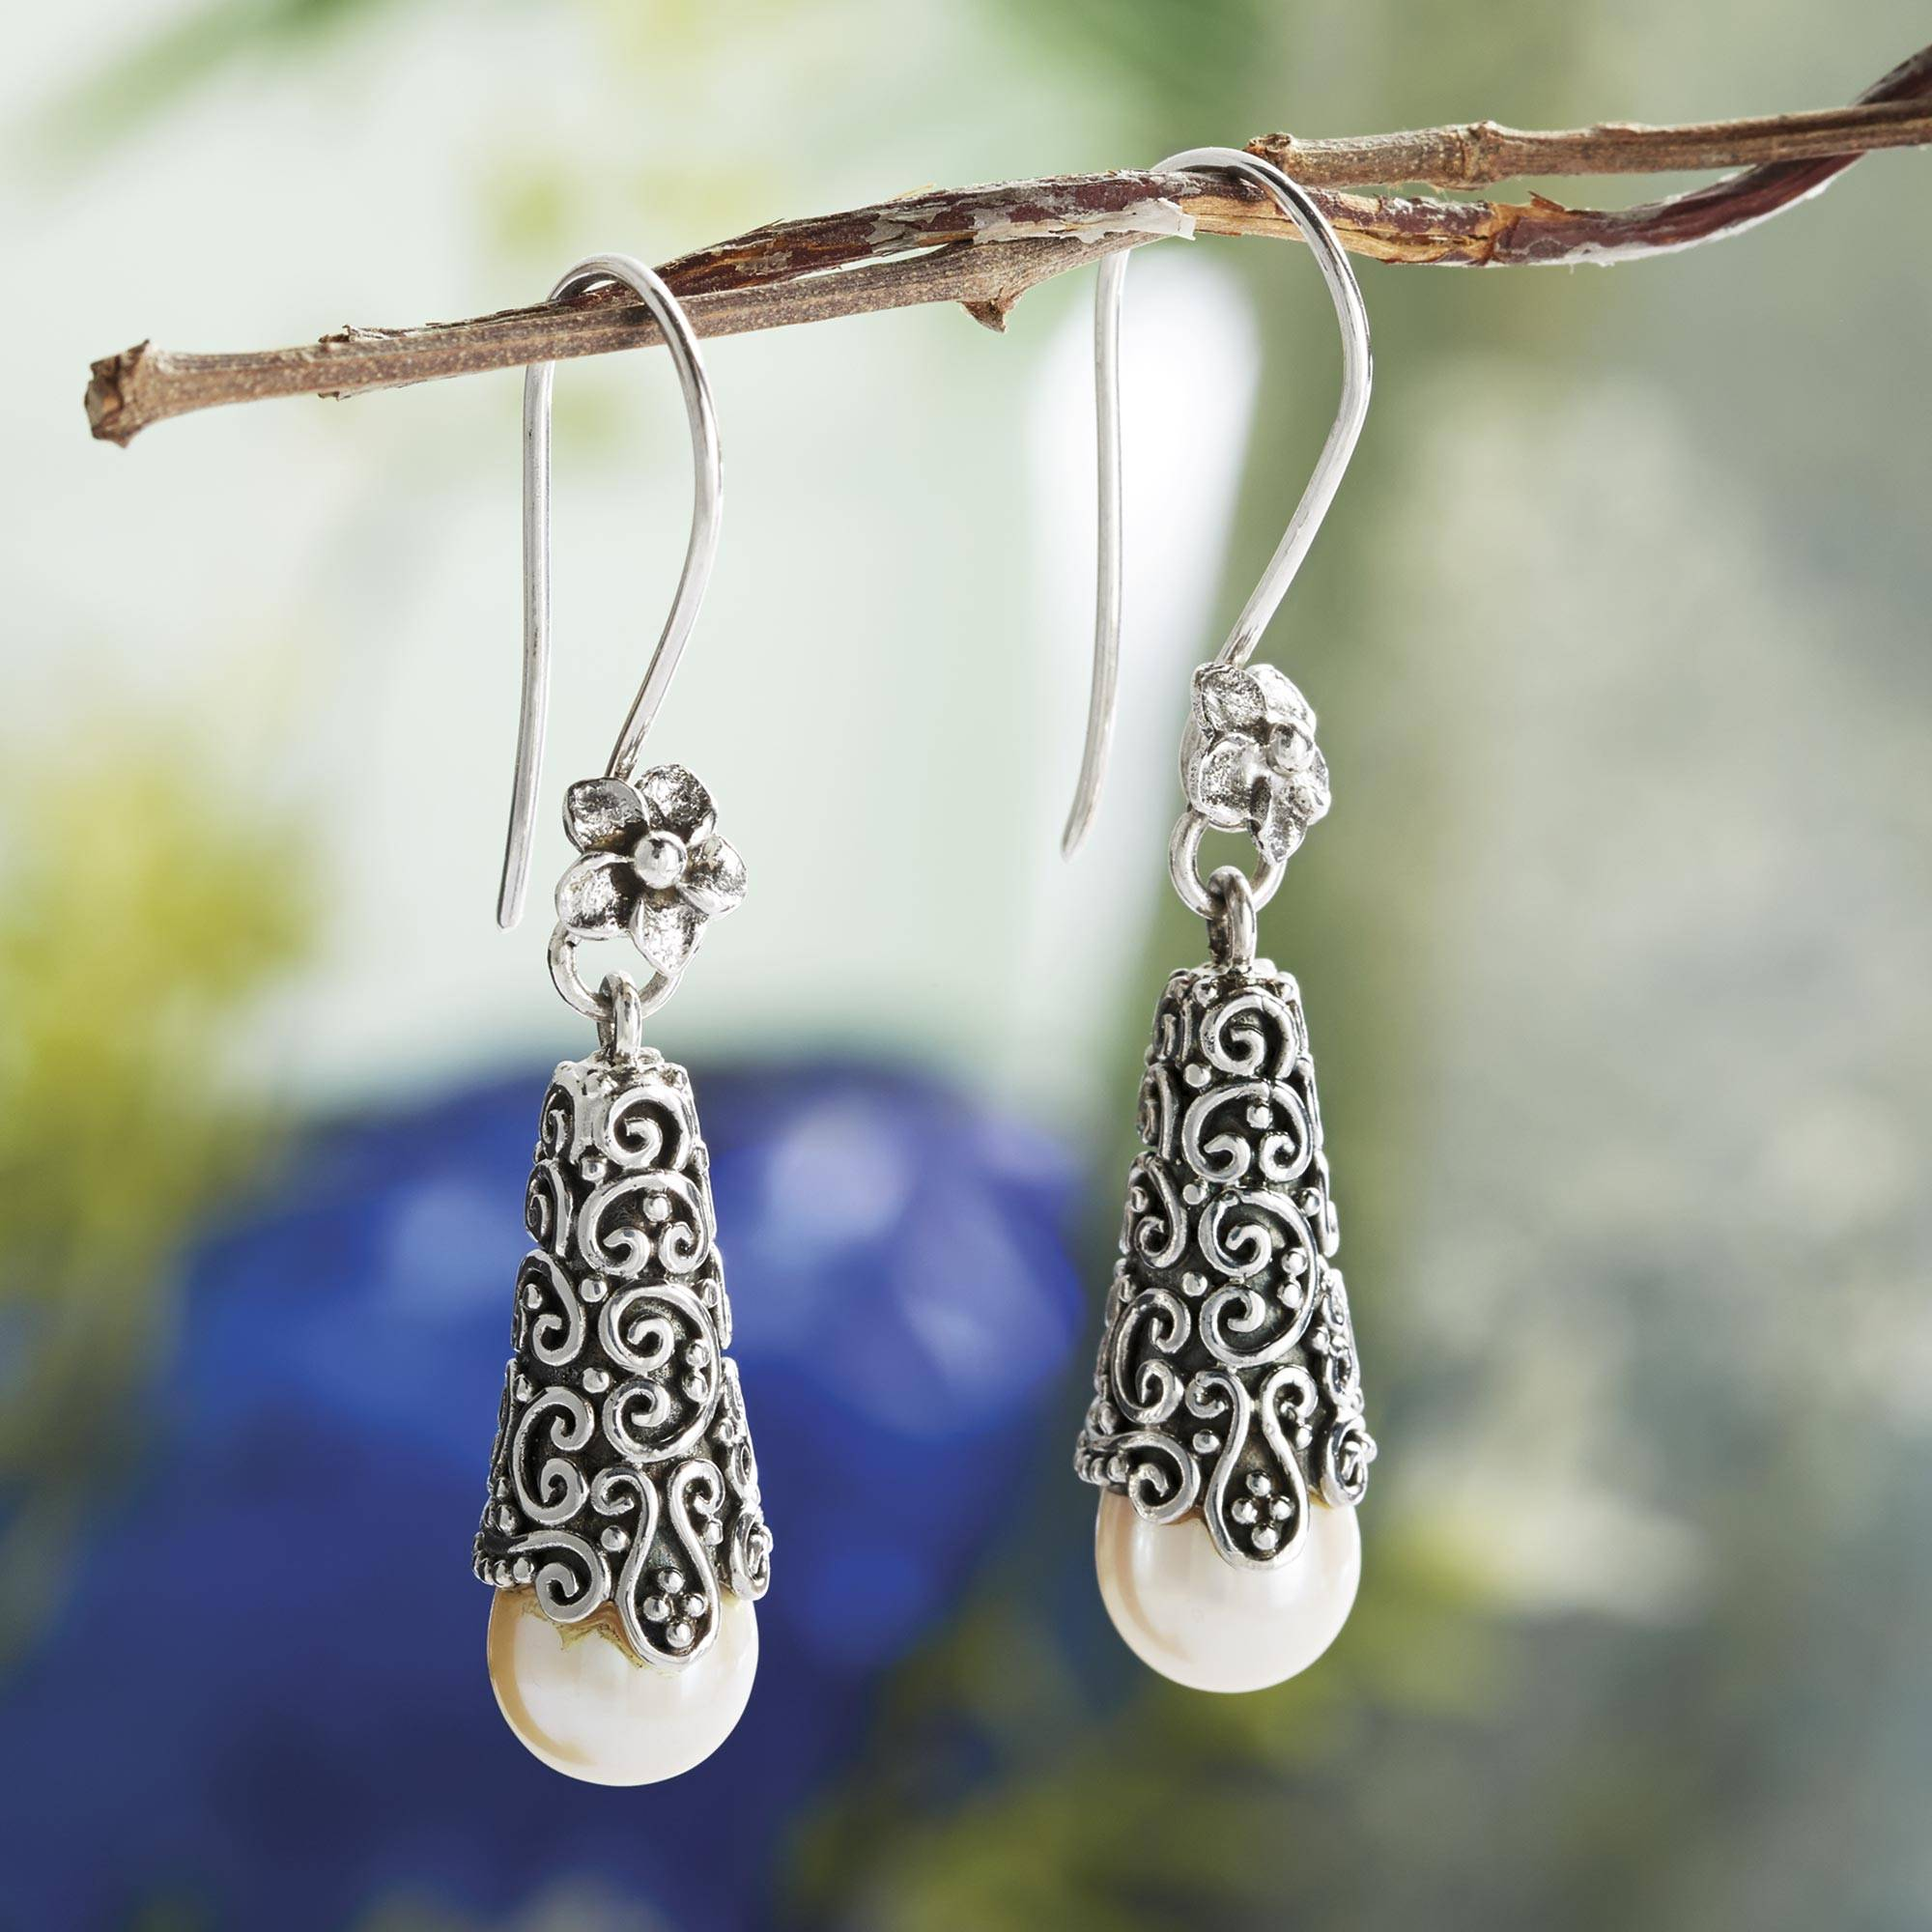 White Arabesque Dewdrop Sterling Silver and Cultured Pearl Dangle Earrings Matching Accessories